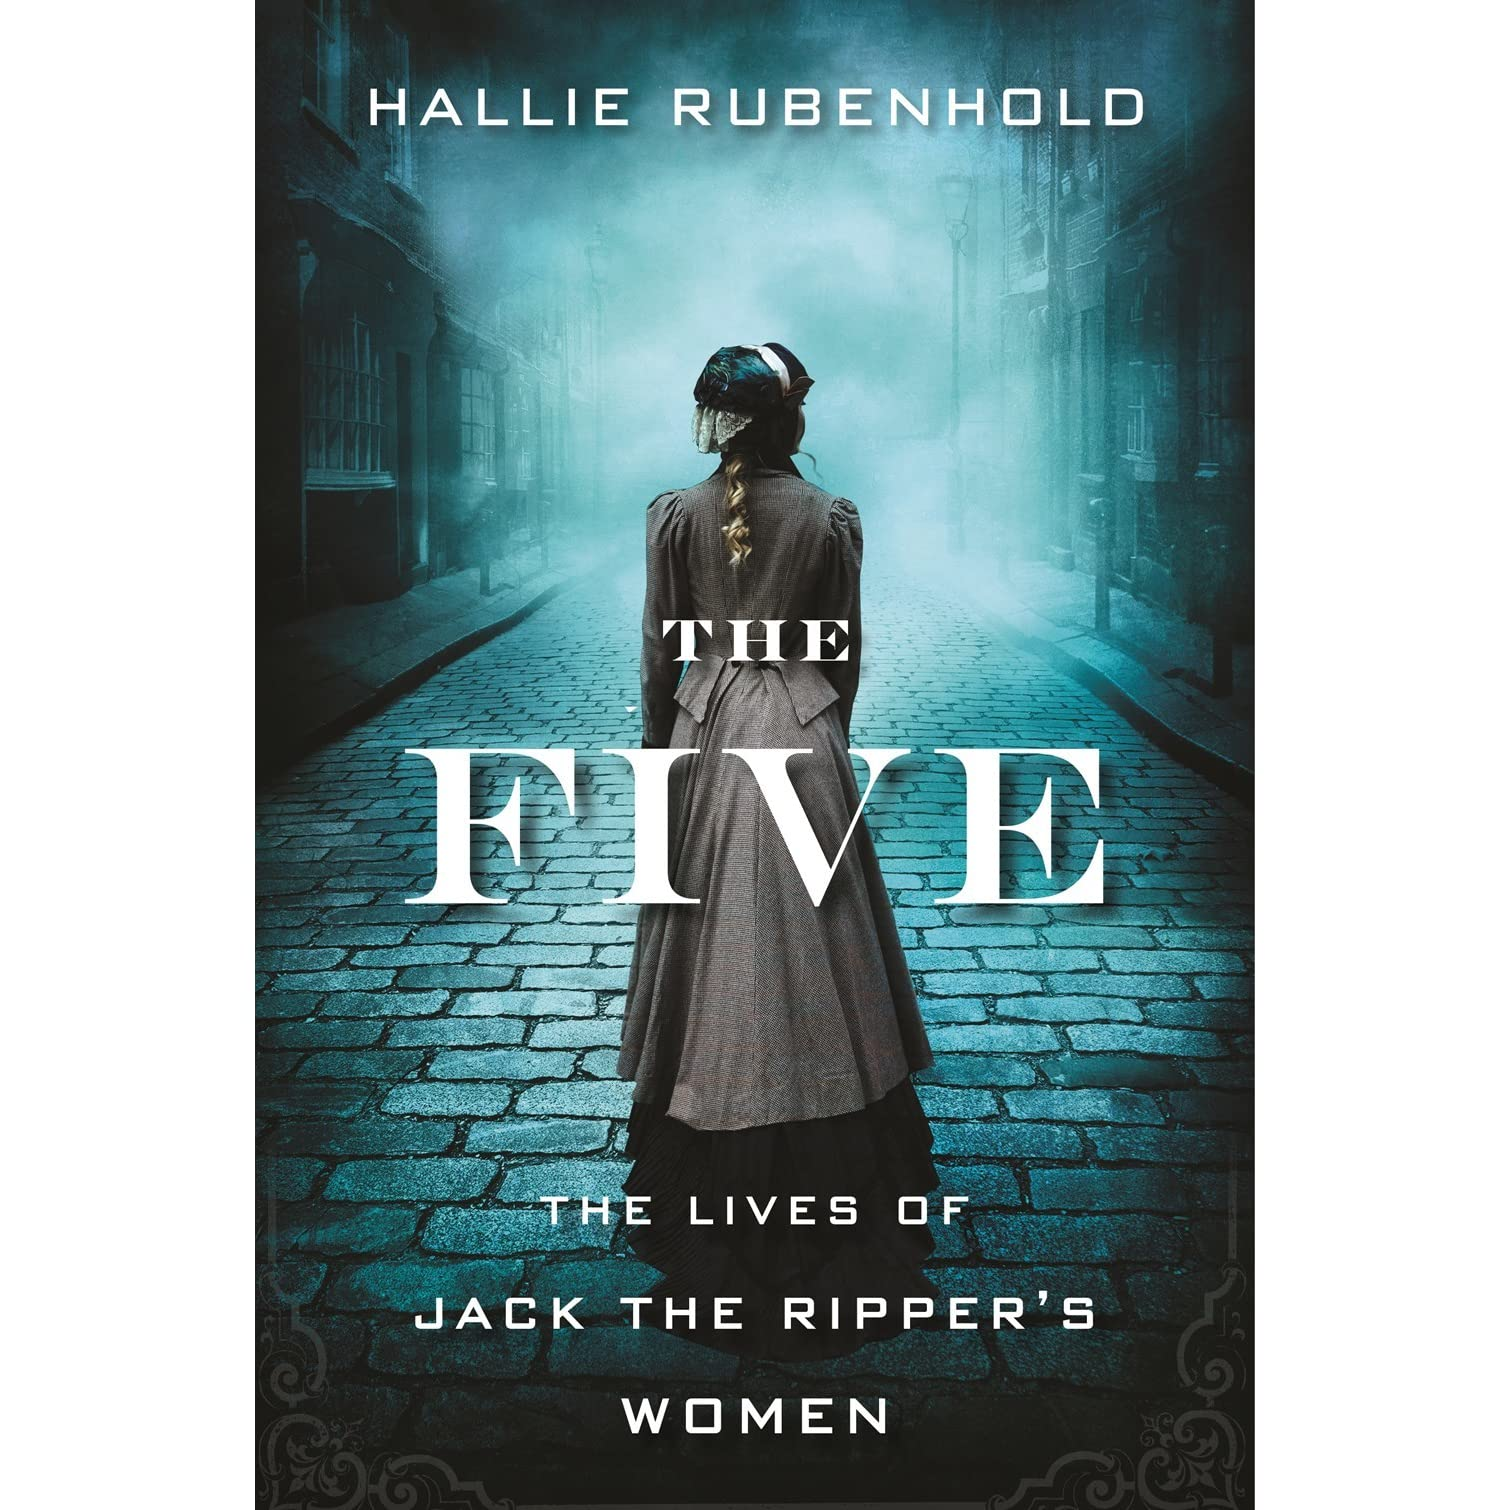 The Five: The Untold Lives of the Women Killed by Jack the Ripper by